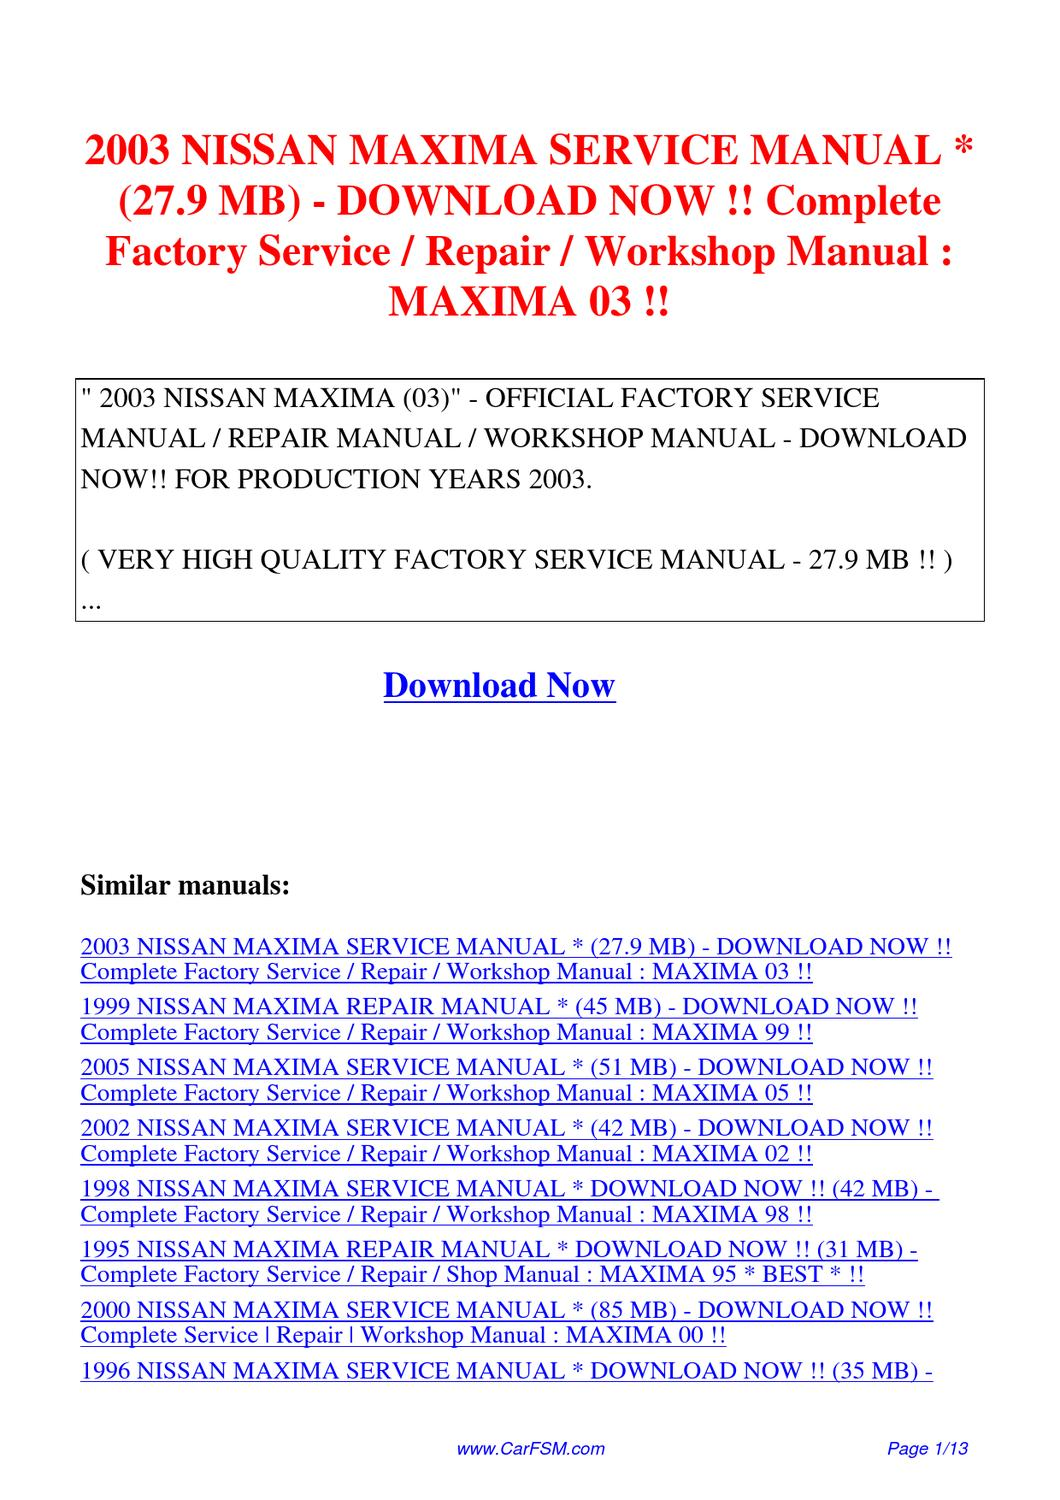 2003 nissan maxima service manual 27 9 mb complete factory. Black Bedroom Furniture Sets. Home Design Ideas